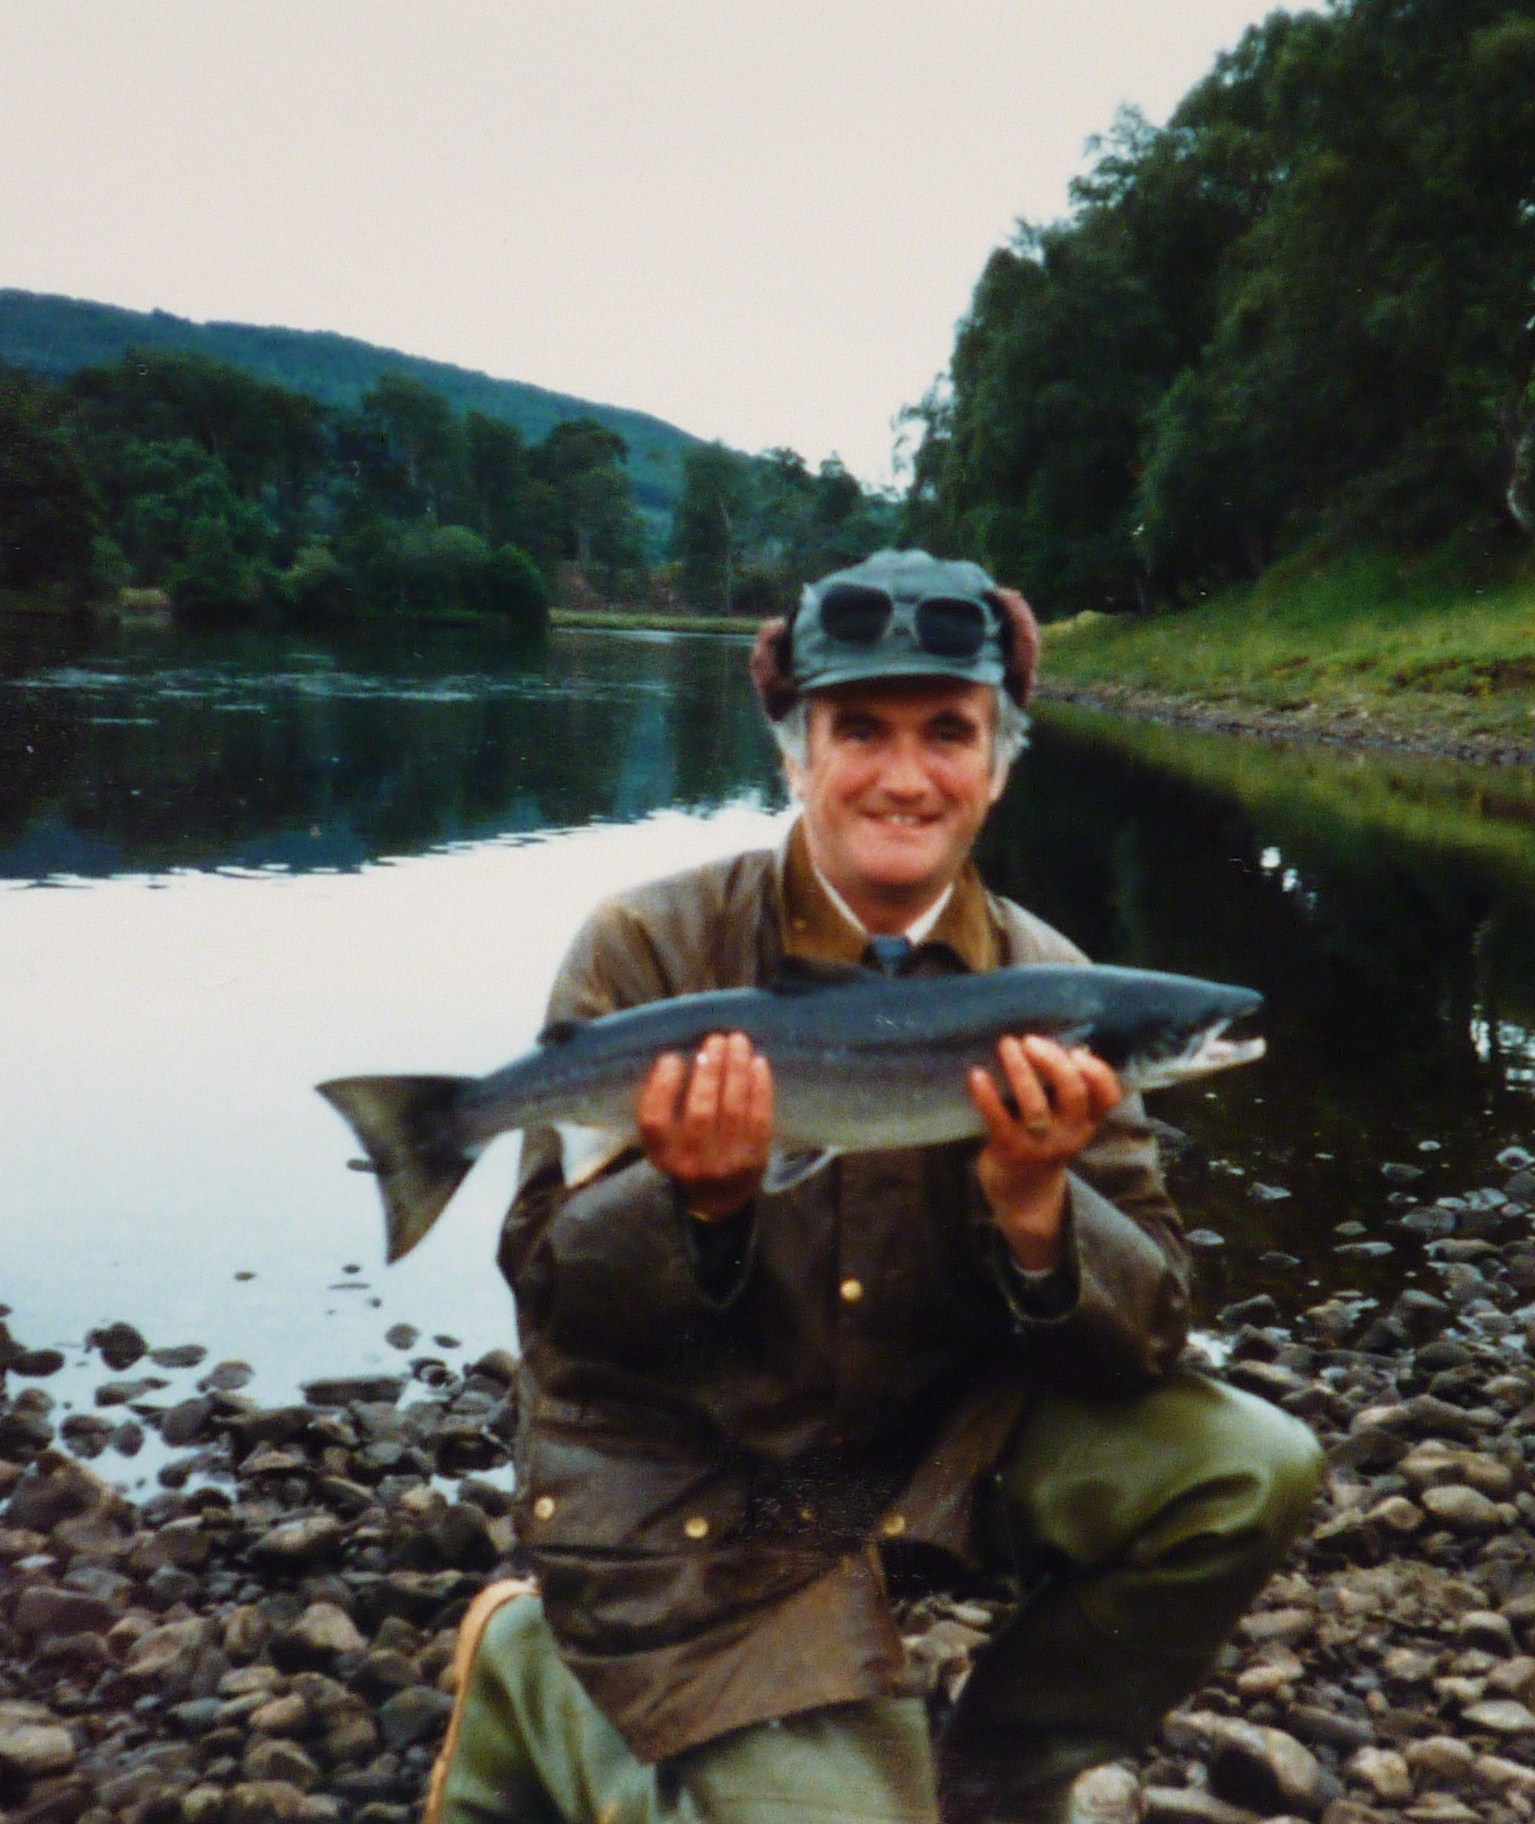 Fly fishing whiskey and trout fishing for Salmon fishing near me